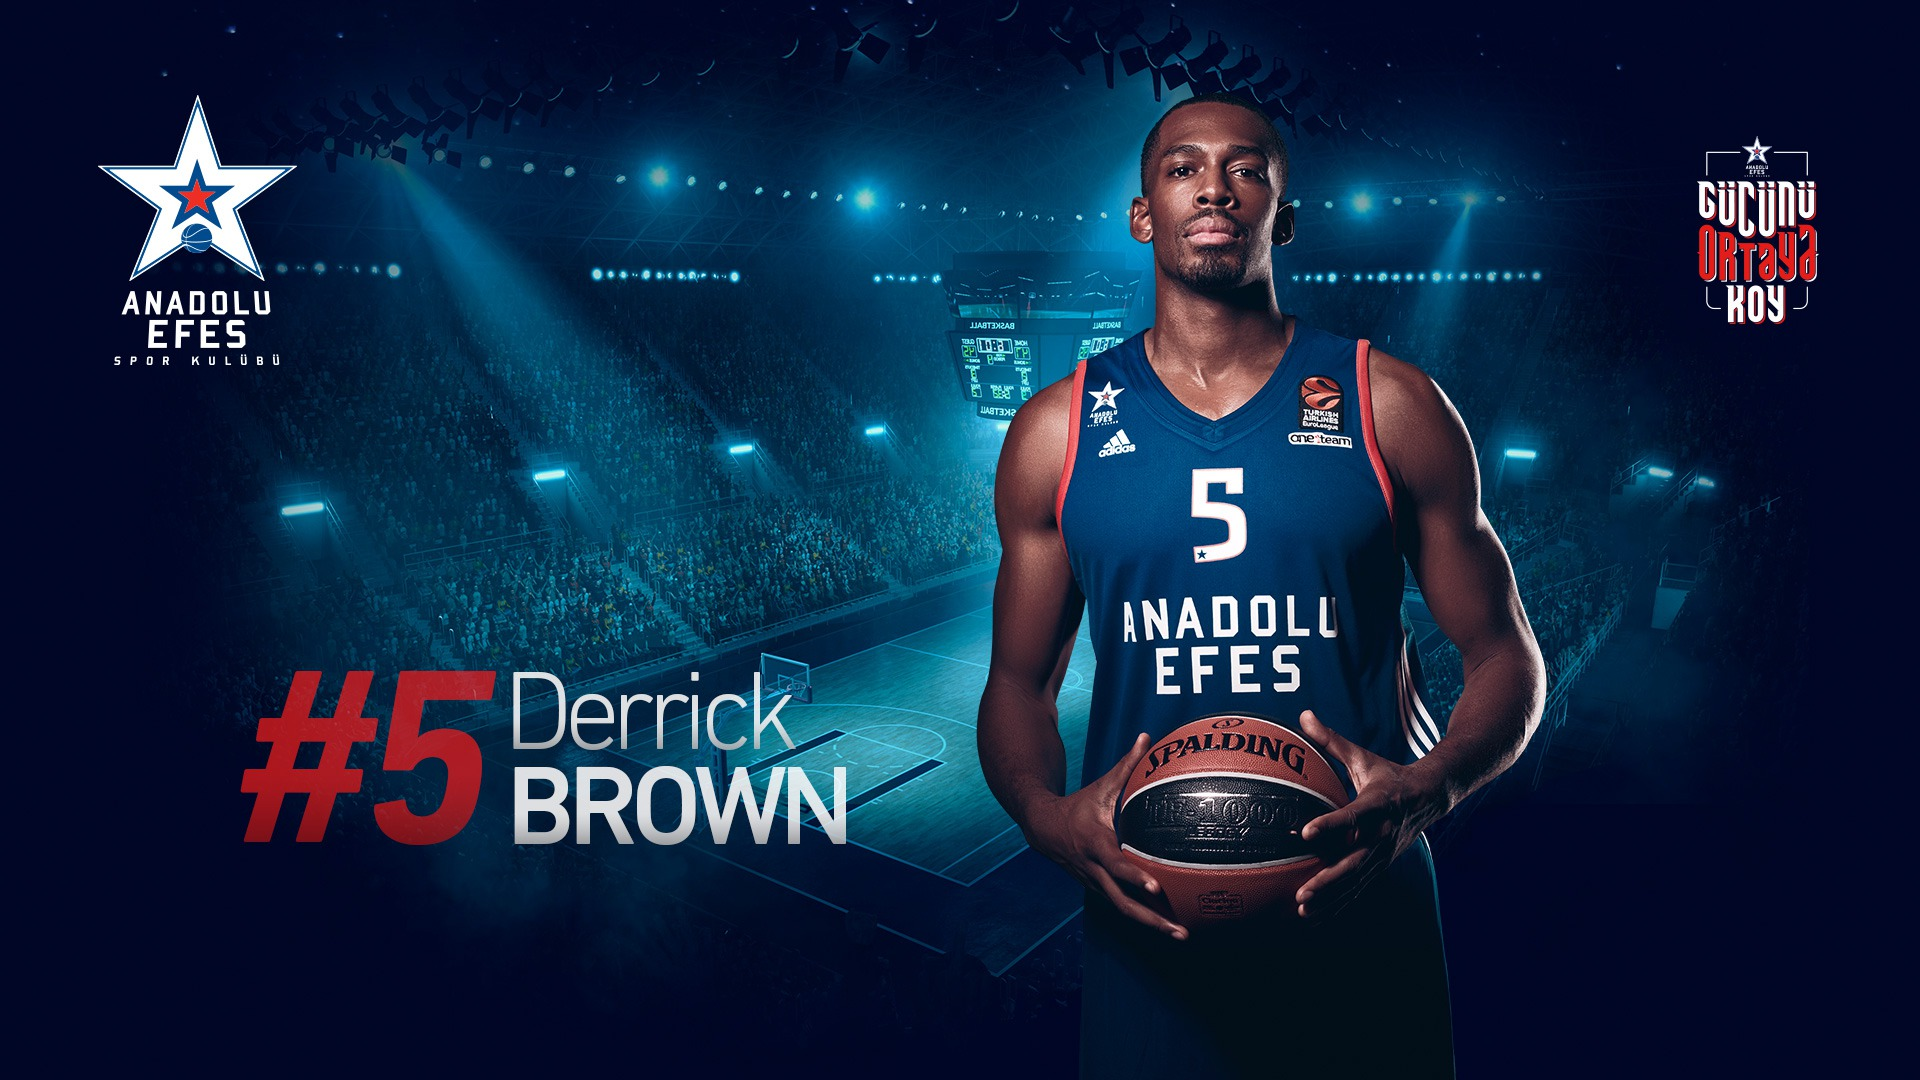 brown_euroleague_temsilcilerimizde_transfer_gundemi_240717_basketboltr